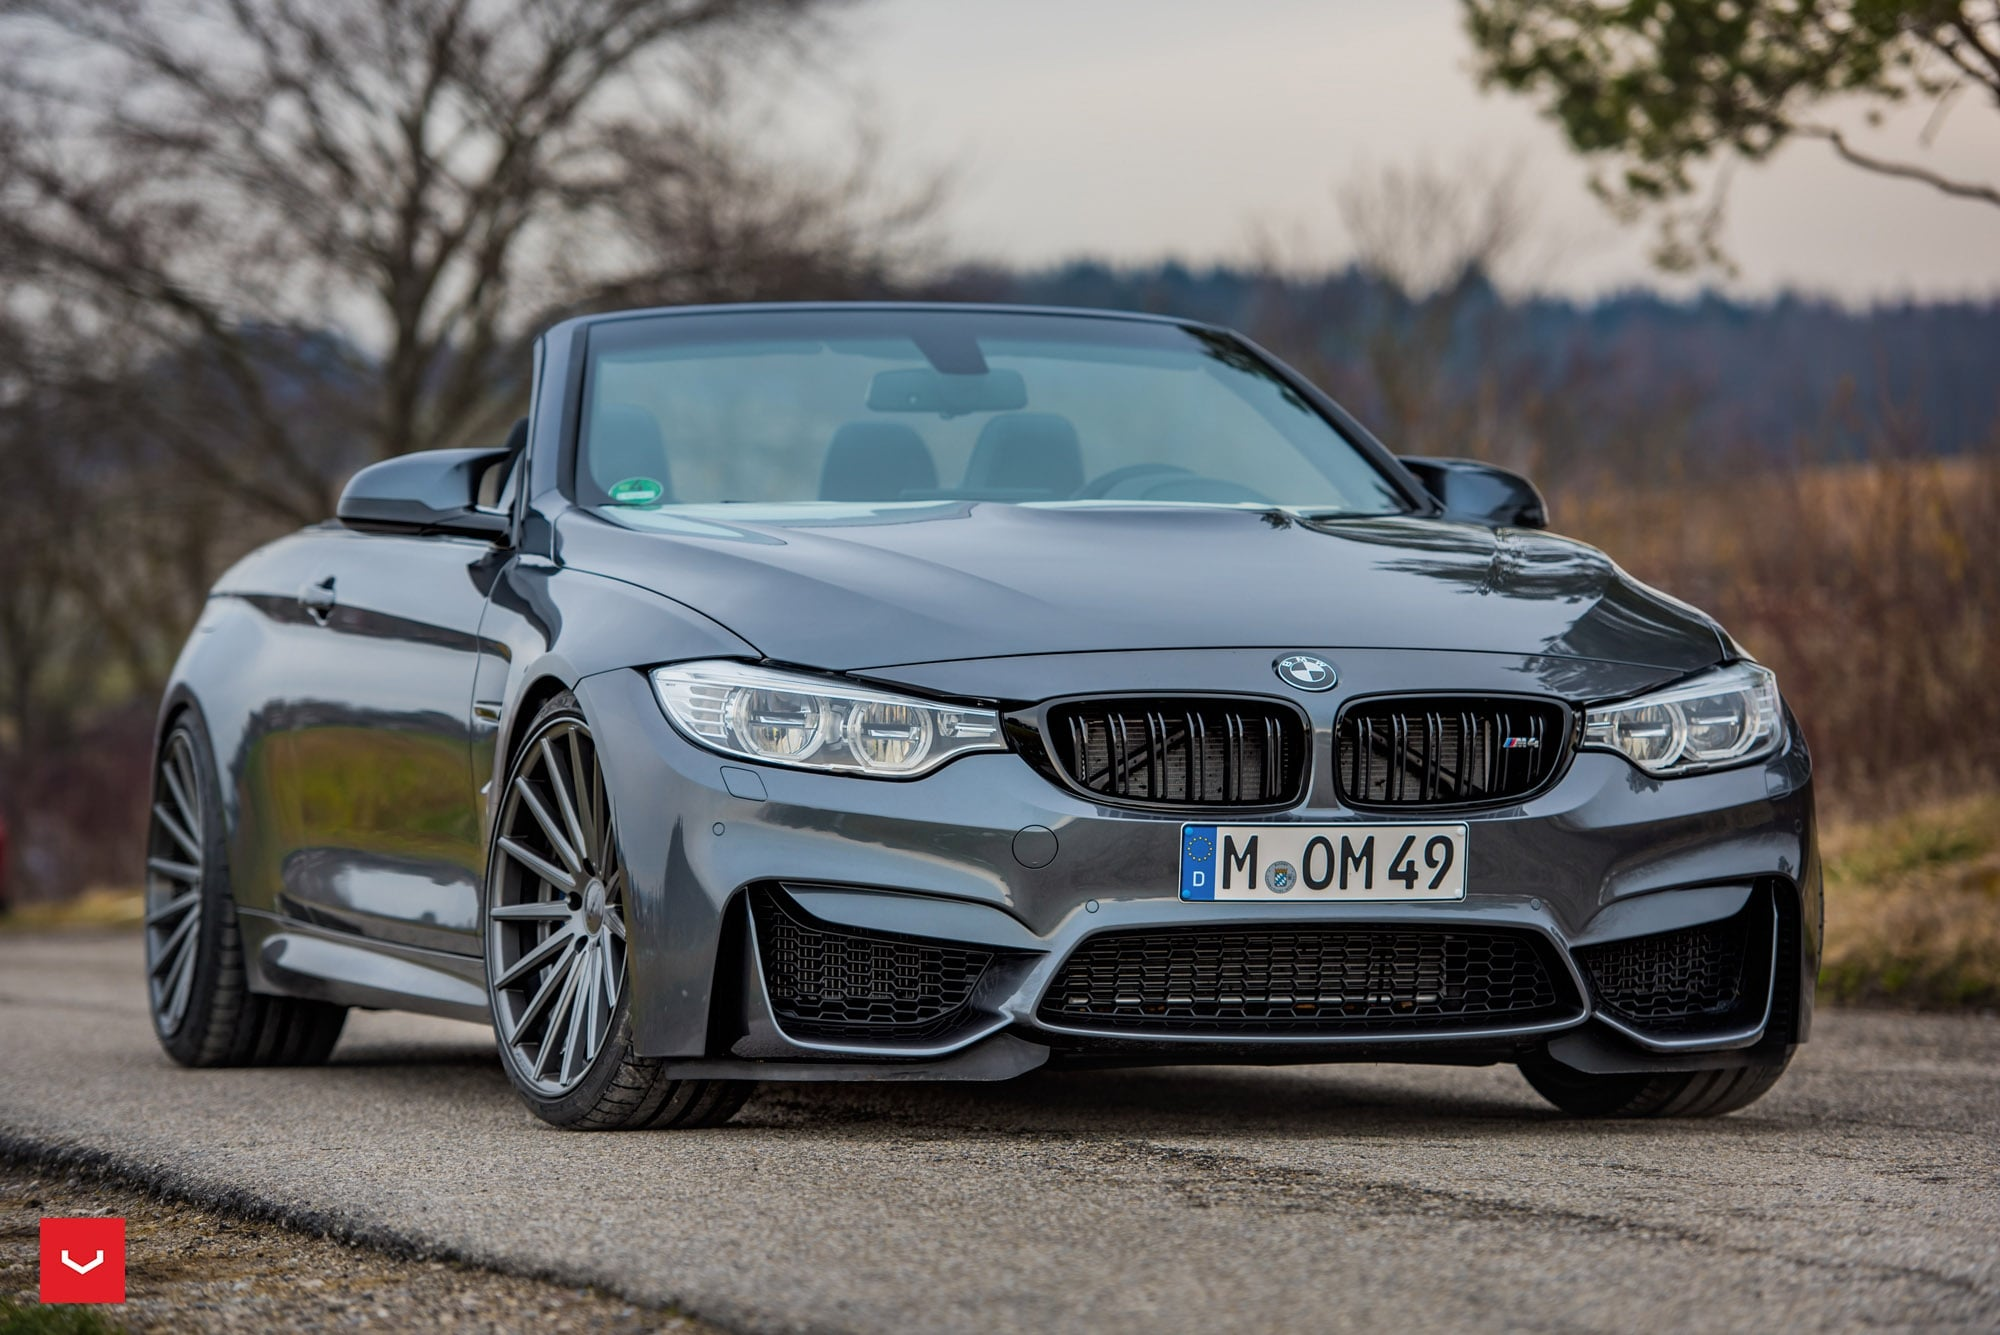 Cars Hd Wallpapers 1080p For Pc Bmw 2016 Bmw M4 Convertible Wallpapers Hd Download